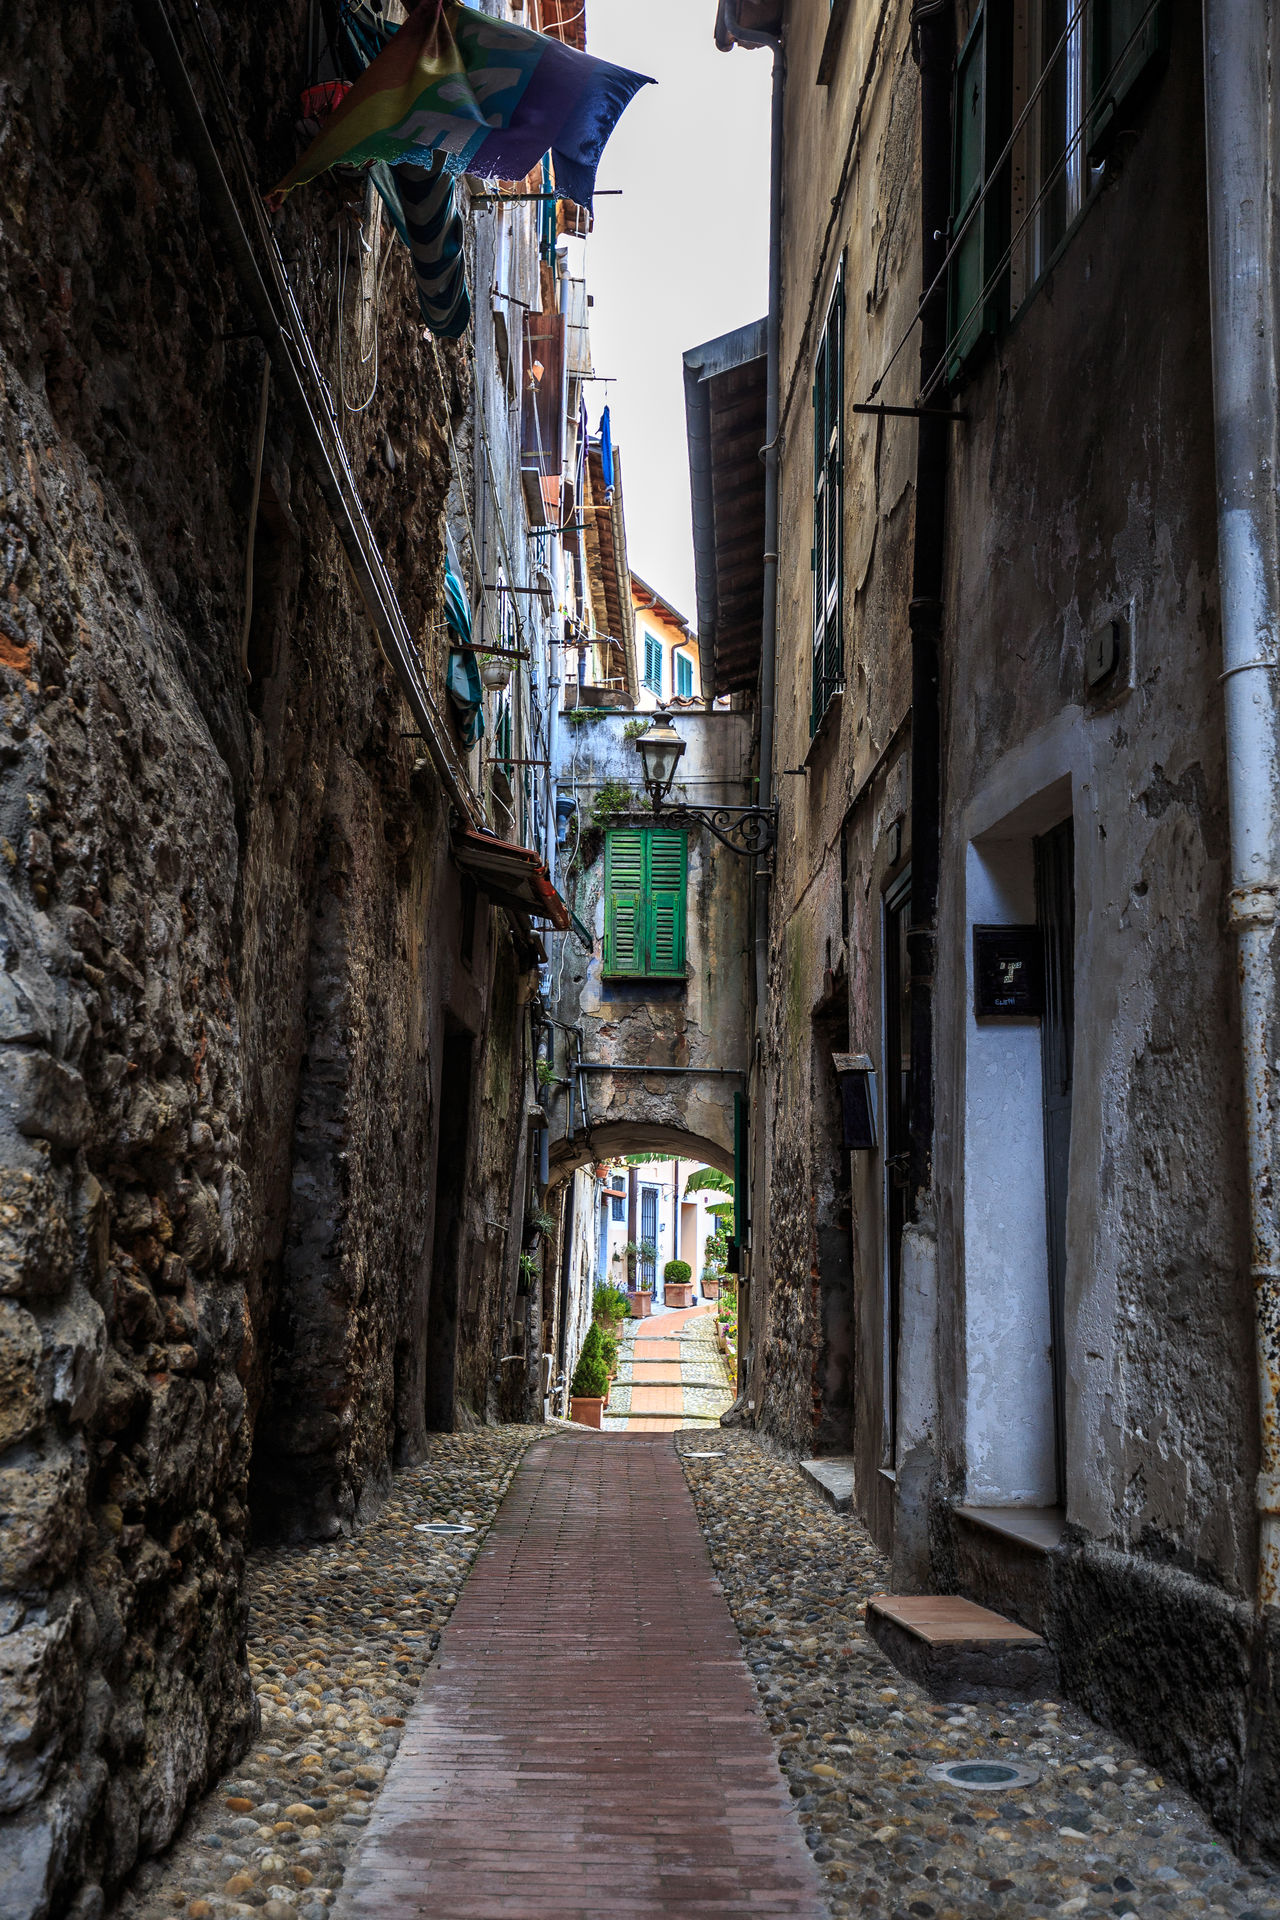 Alley Architecture Building Exterior Built Structure City Day No People Outdoors The Way Forward